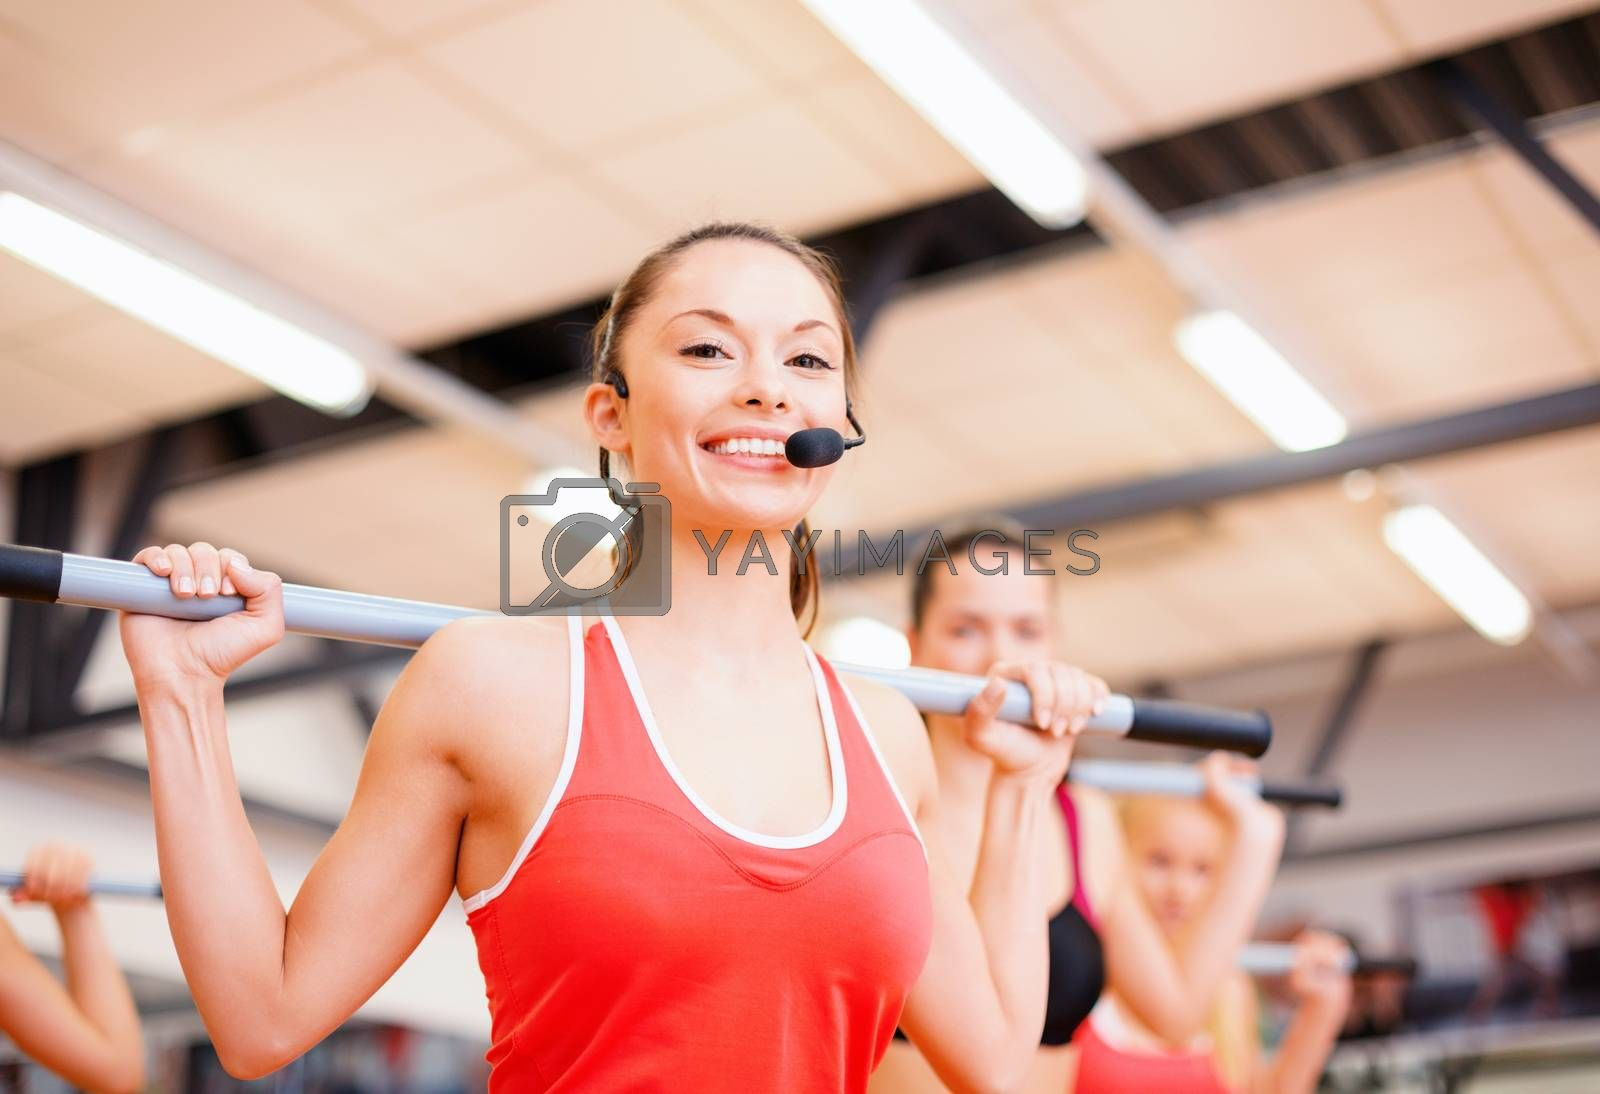 fitness, sport, training, gym and lifestyle concept - smiling trainer in front of the group of people working out with barbells in the gym